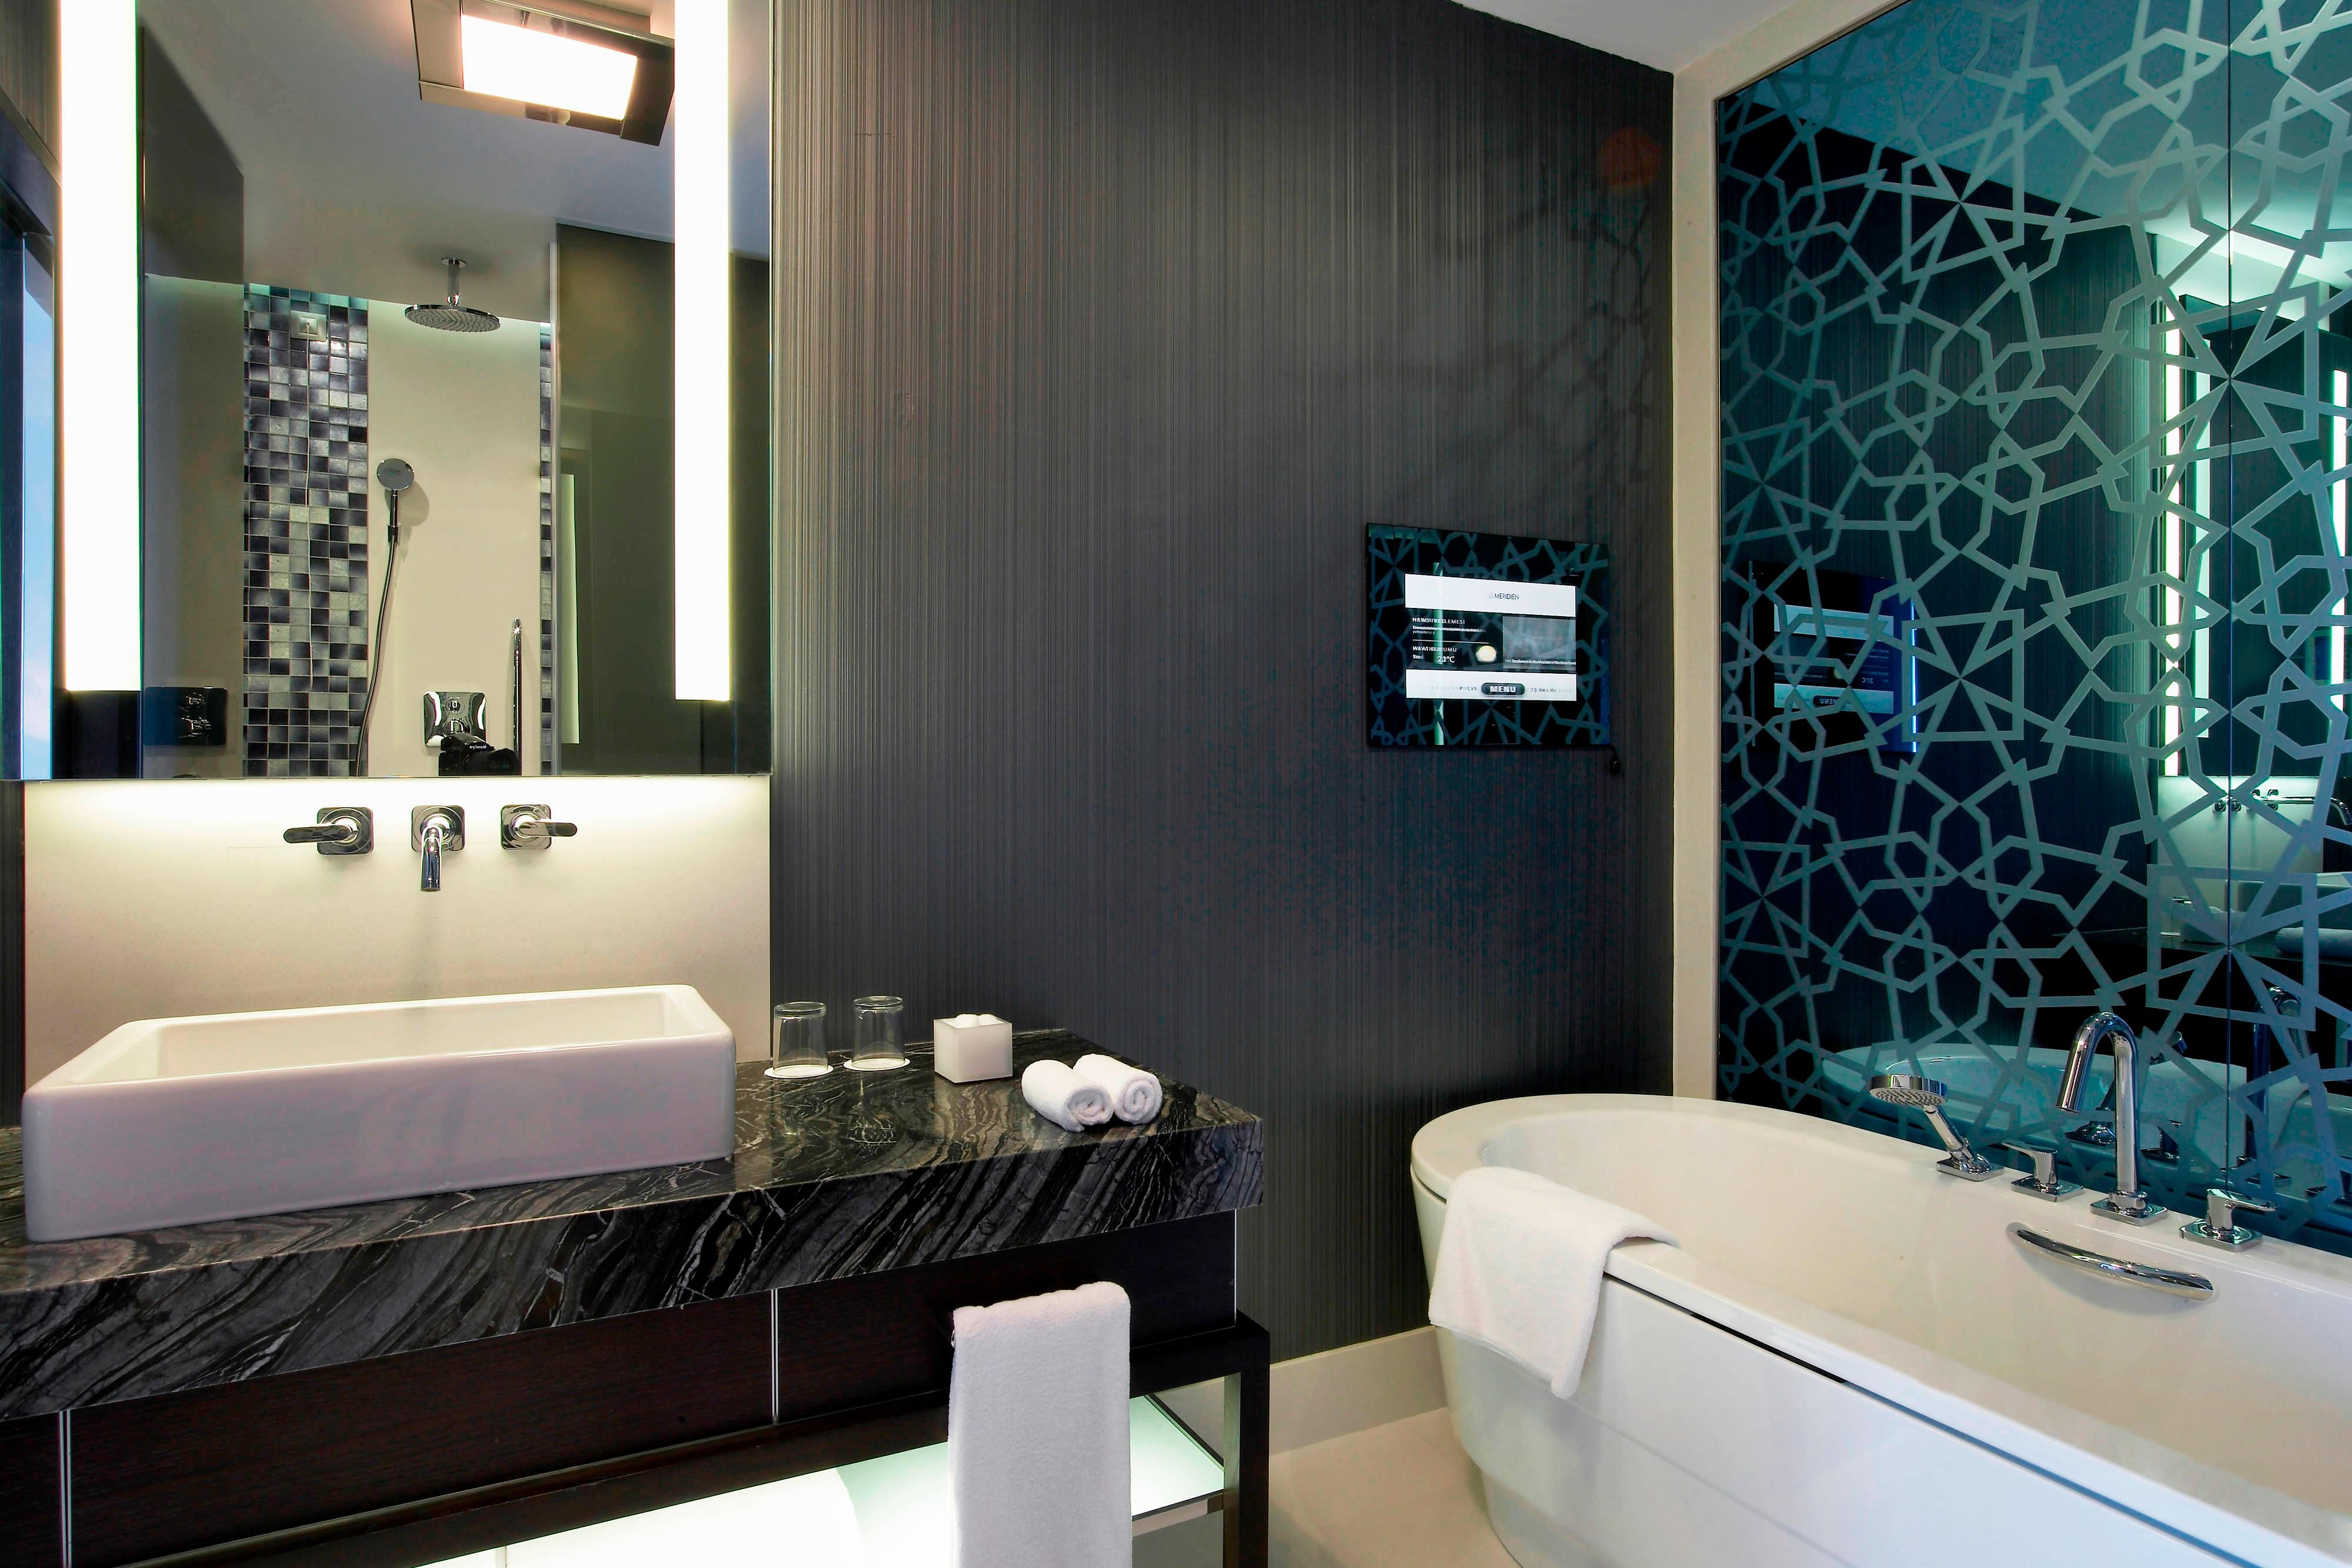 Bathroom with separate bathtub and TV